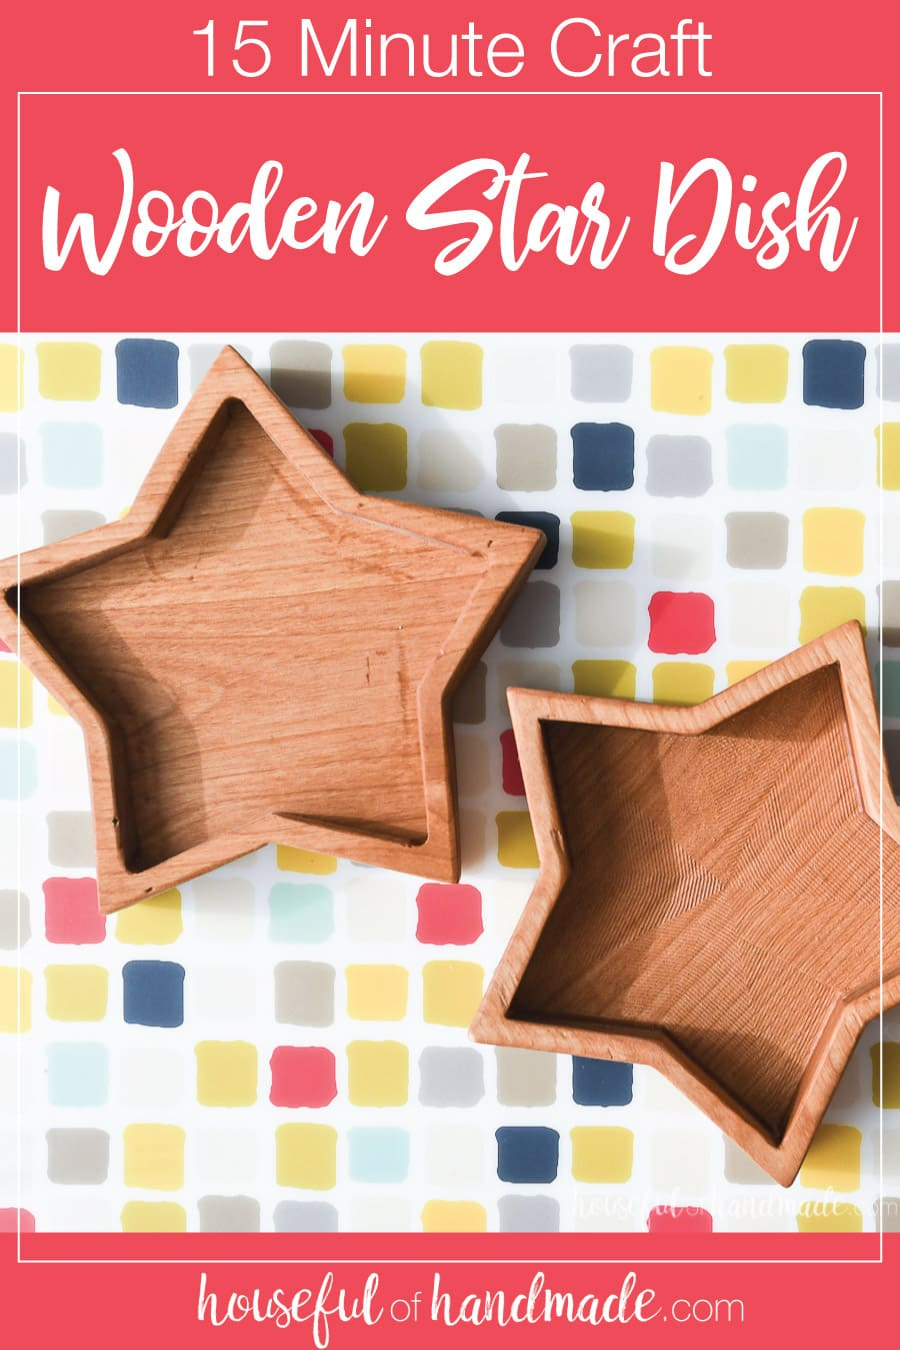 Two wooden star dishes on a background with words